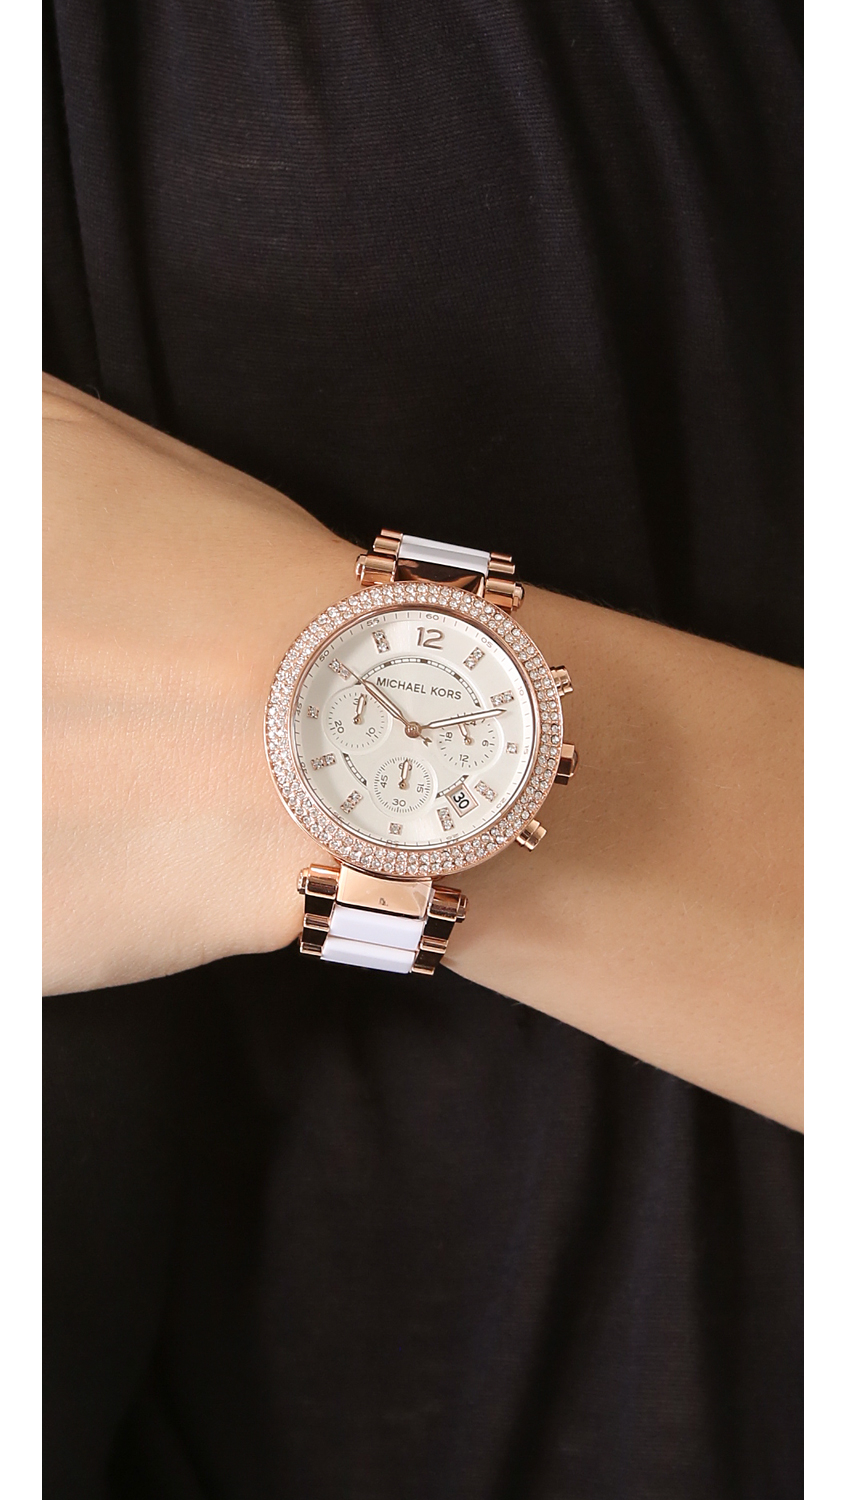 michael kors parker glitz chronograph watch white rose gold in white lyst. Black Bedroom Furniture Sets. Home Design Ideas